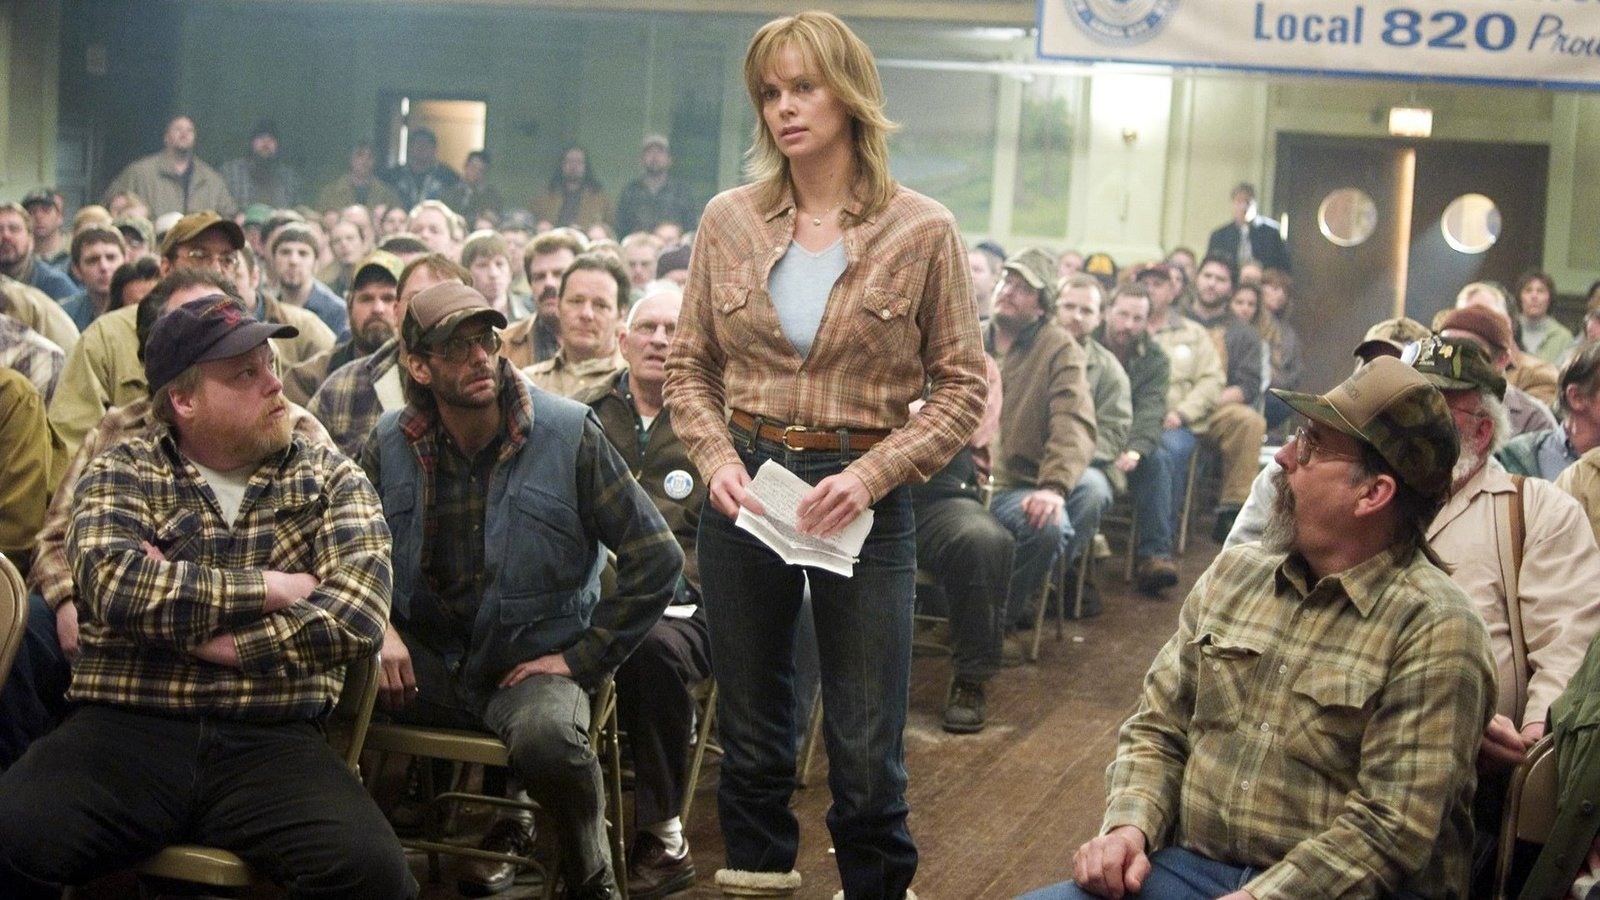 Working hard for the money: Movies for Labor Day